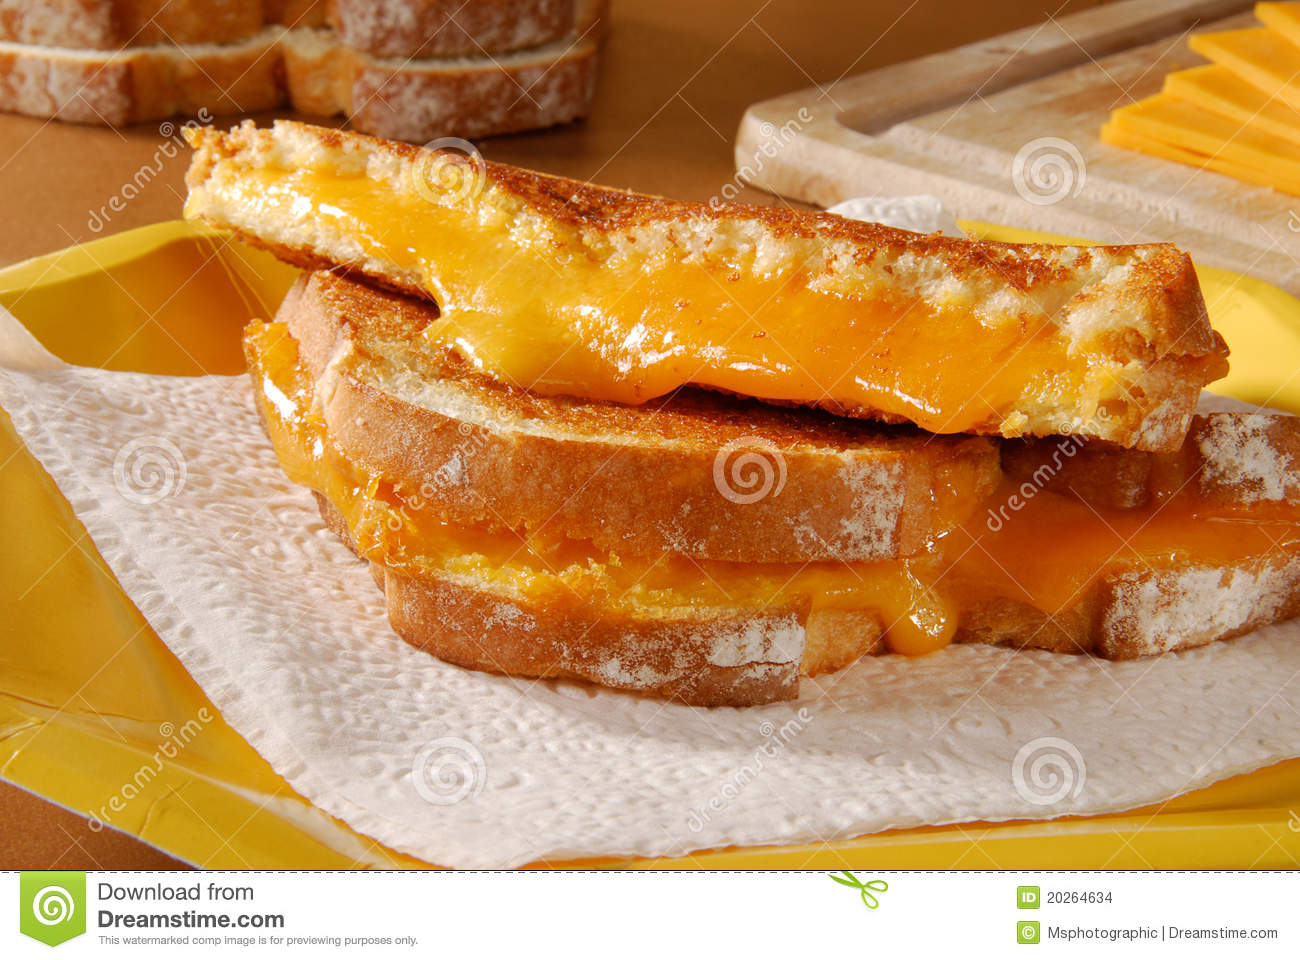 how to make a grilled cheese essay How to make a grilled cheese sandwich using a toaster oven - prepare 2-slices of cheese: while the 2-slices of bread are being toasted, cut 2-slices of cheese and.